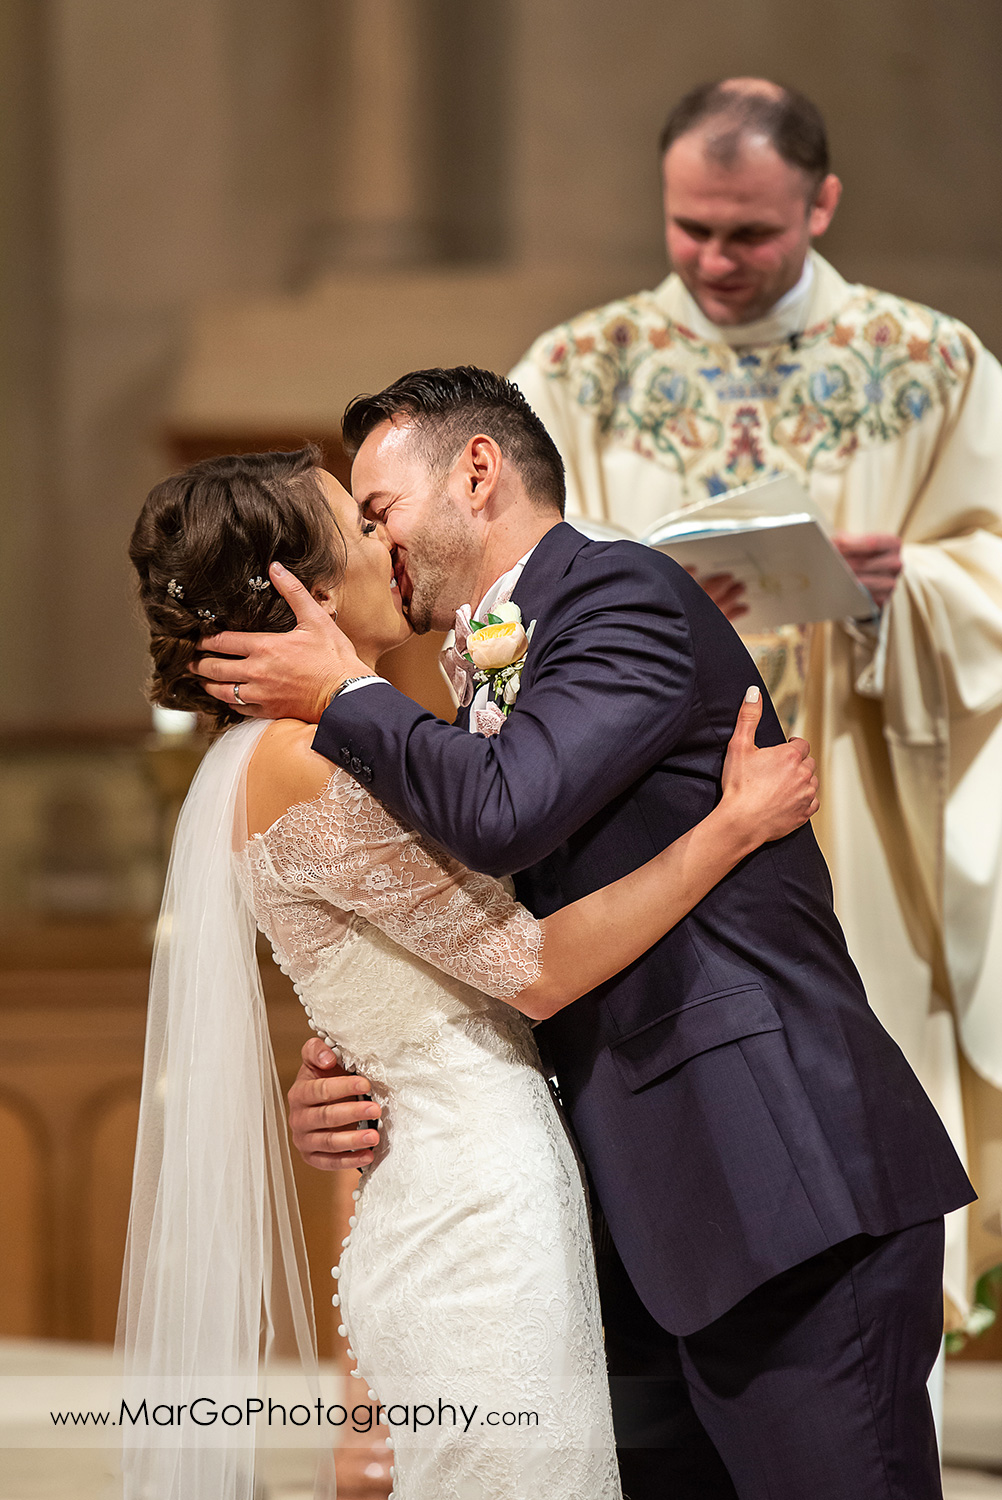 bride and groom kissing during wedding ceremony at Oakland Church of Saint Leo the Great